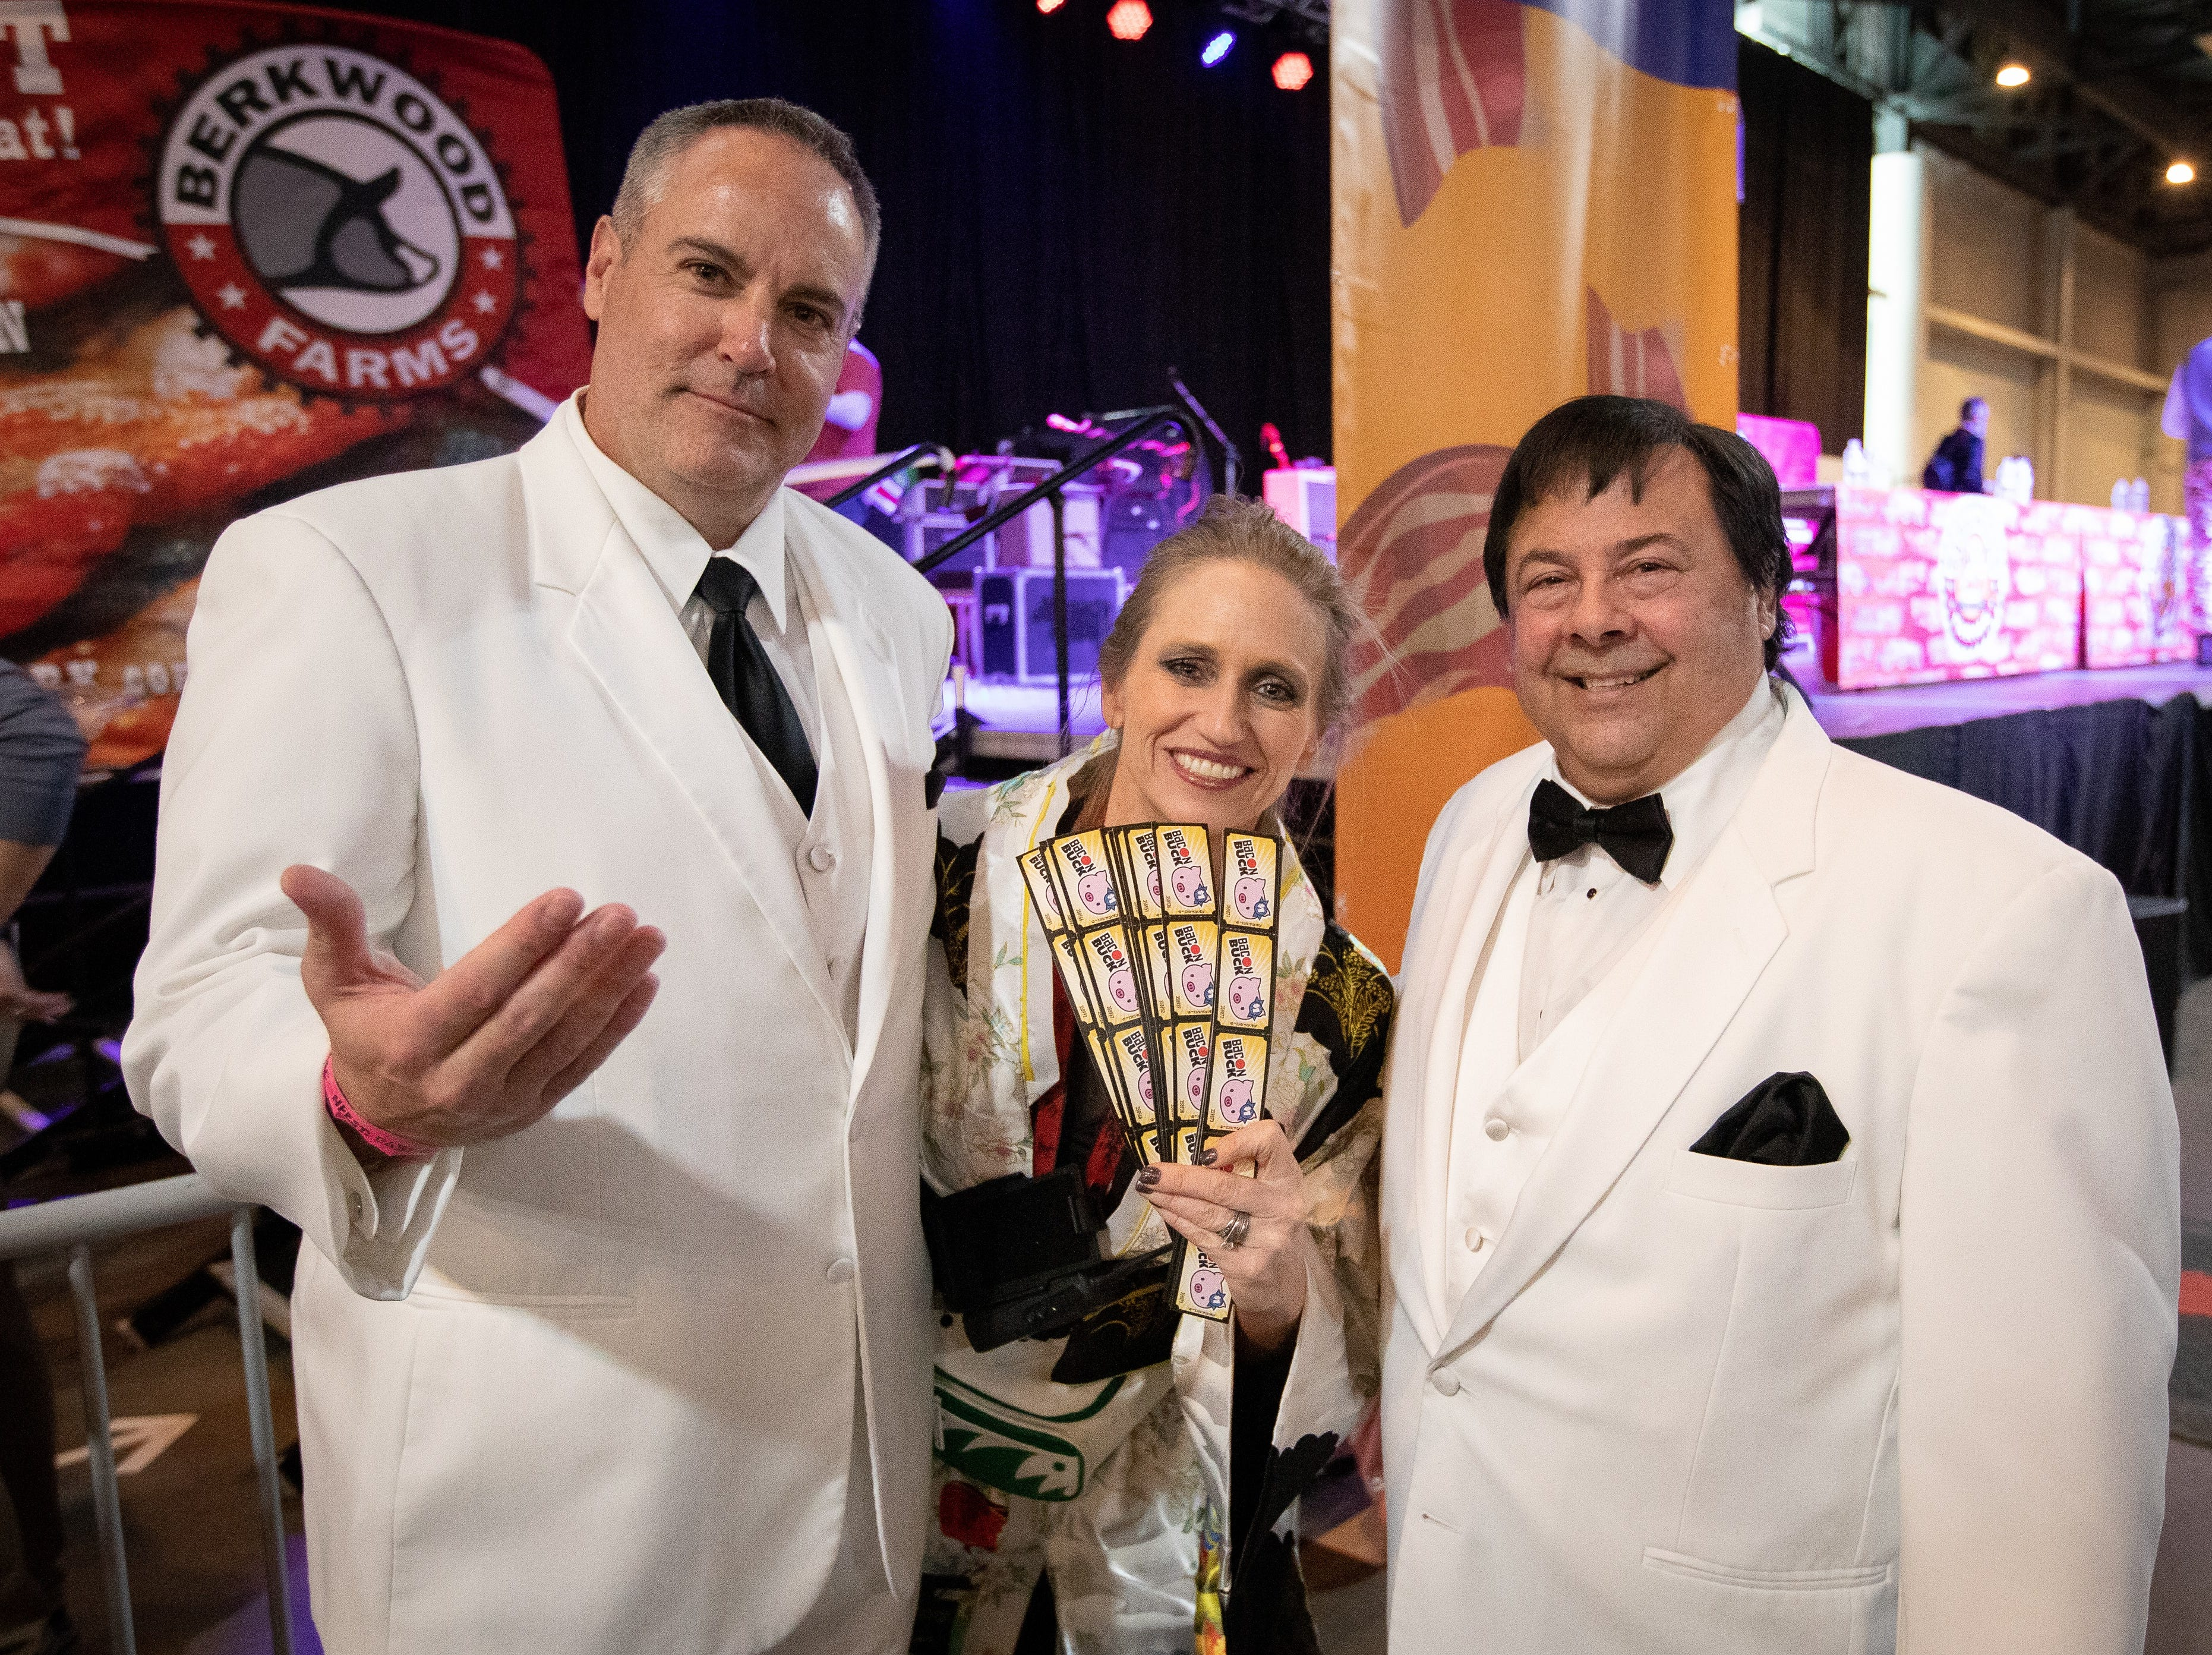 Paul Schulte, of Urbandale, and Davit Hott, of Des Moines, pose for a photo with Mindy Toyne, Festival Director, after winning the costume contest as characters from the tv show Fantasy Island during the Bacon Fest at Hy-Vee Hall on Feb. 16, 2019 in Des Moines, Iowa.